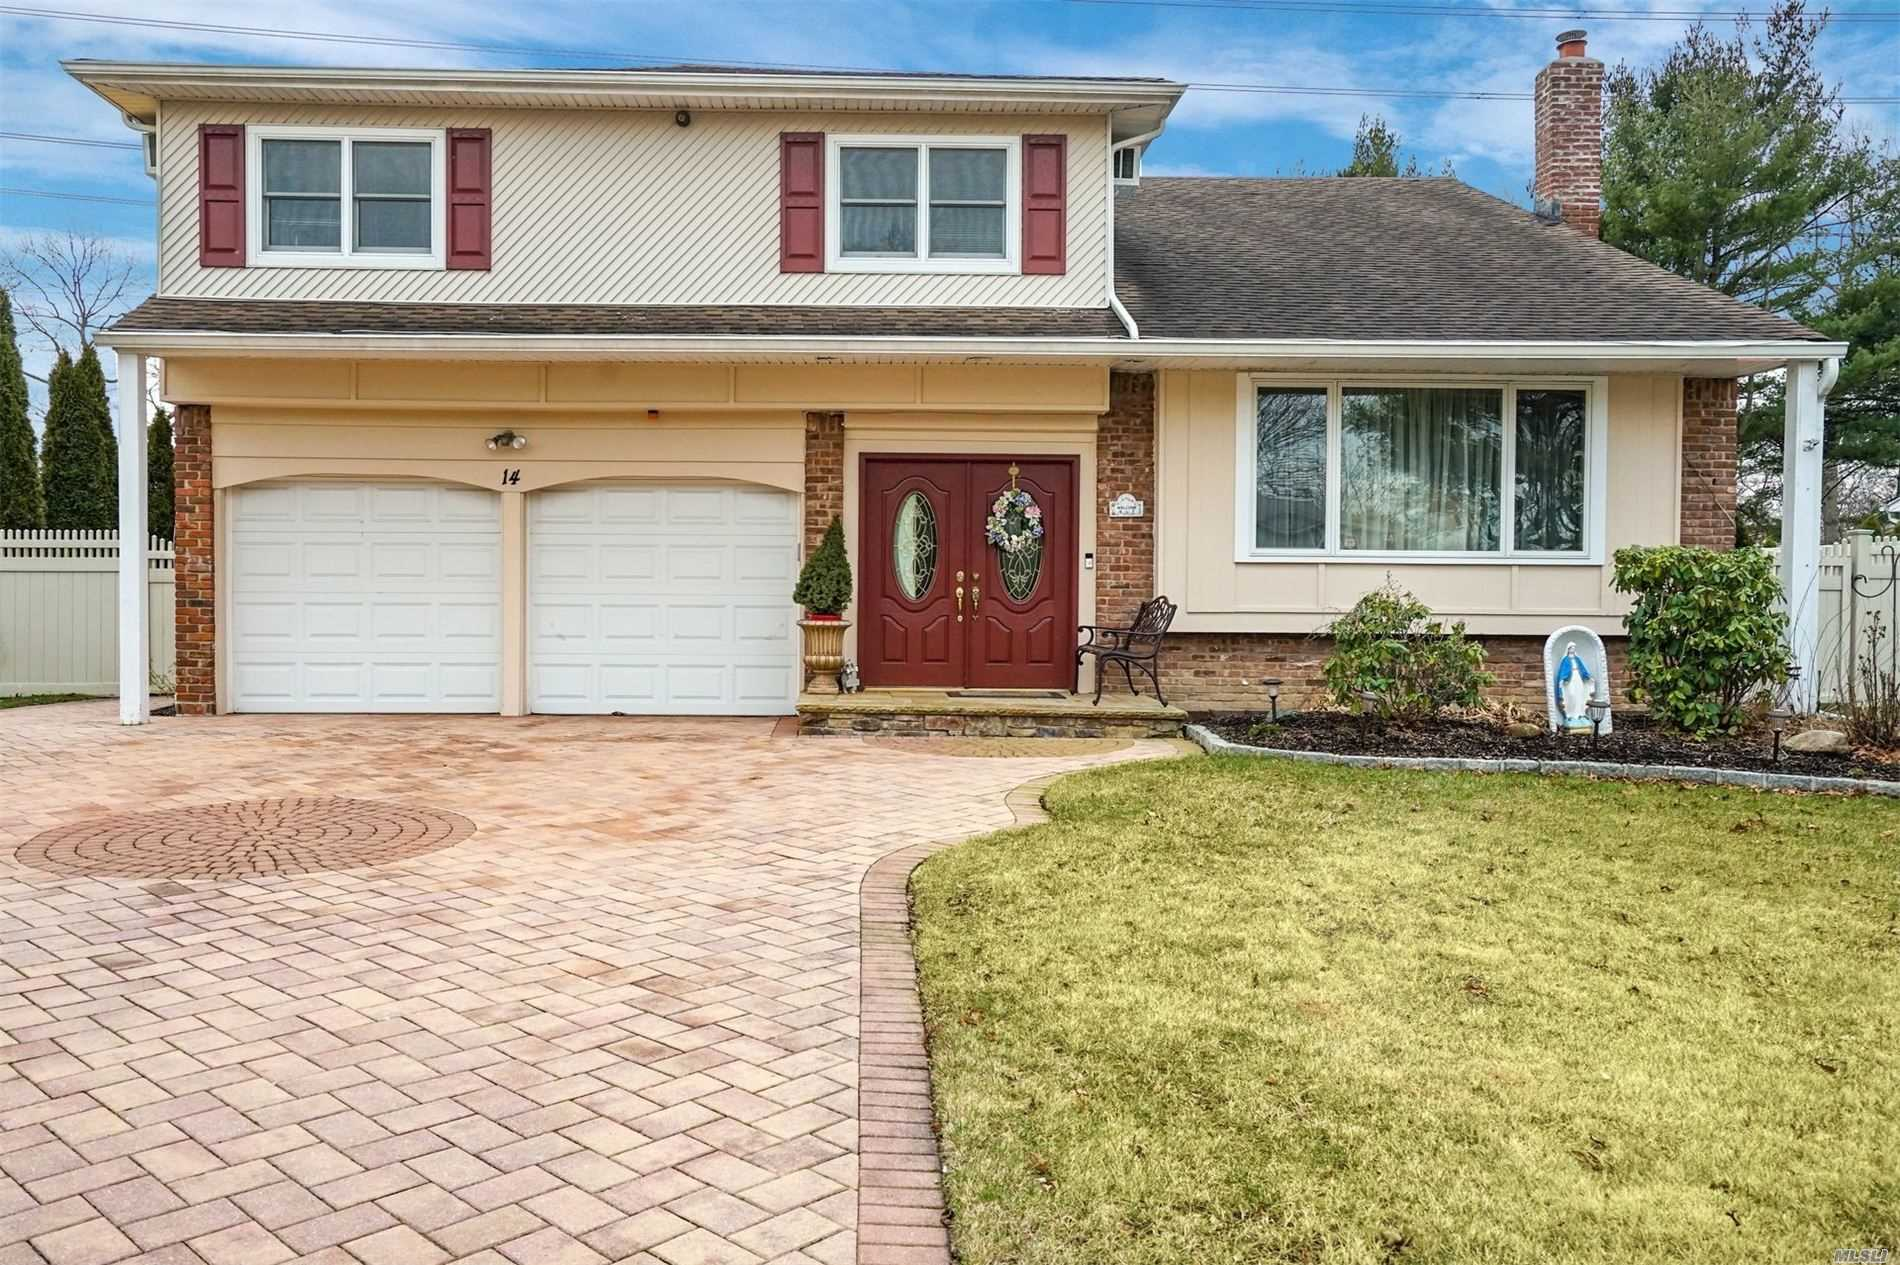 14 Sioux Dr - Commack, New York